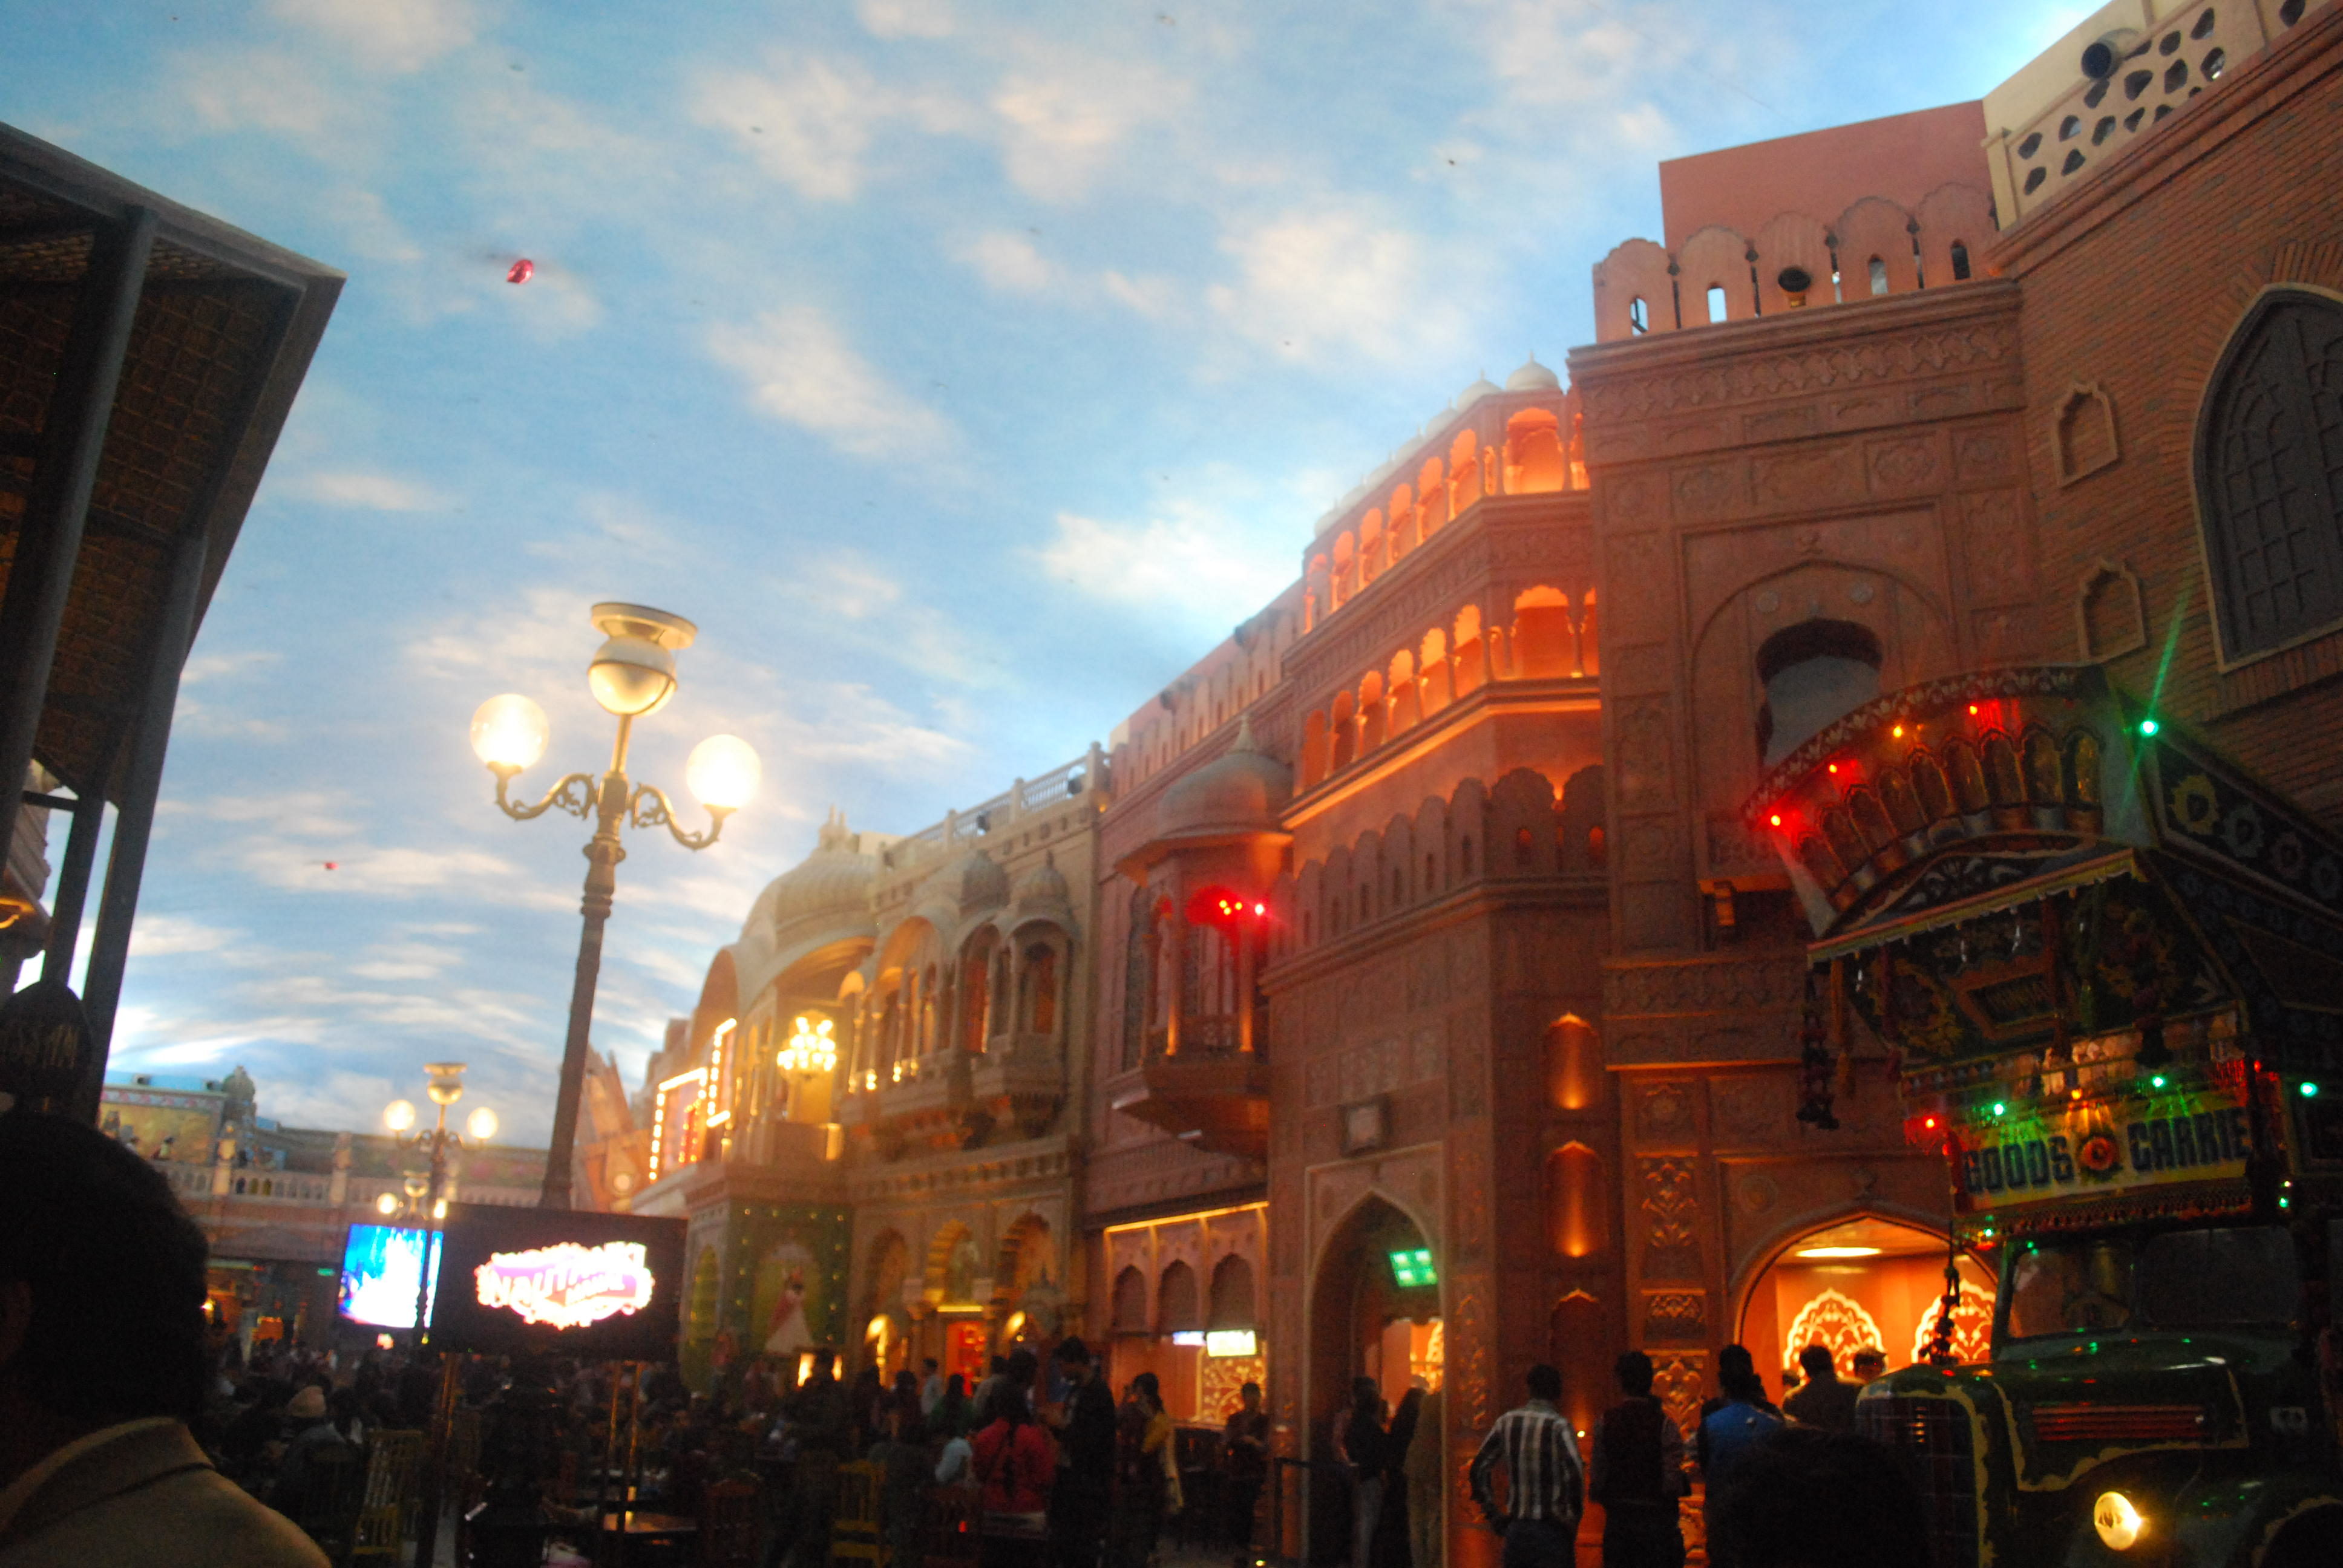 Kingdom of Dreams: The one thing you absolutely must do ...